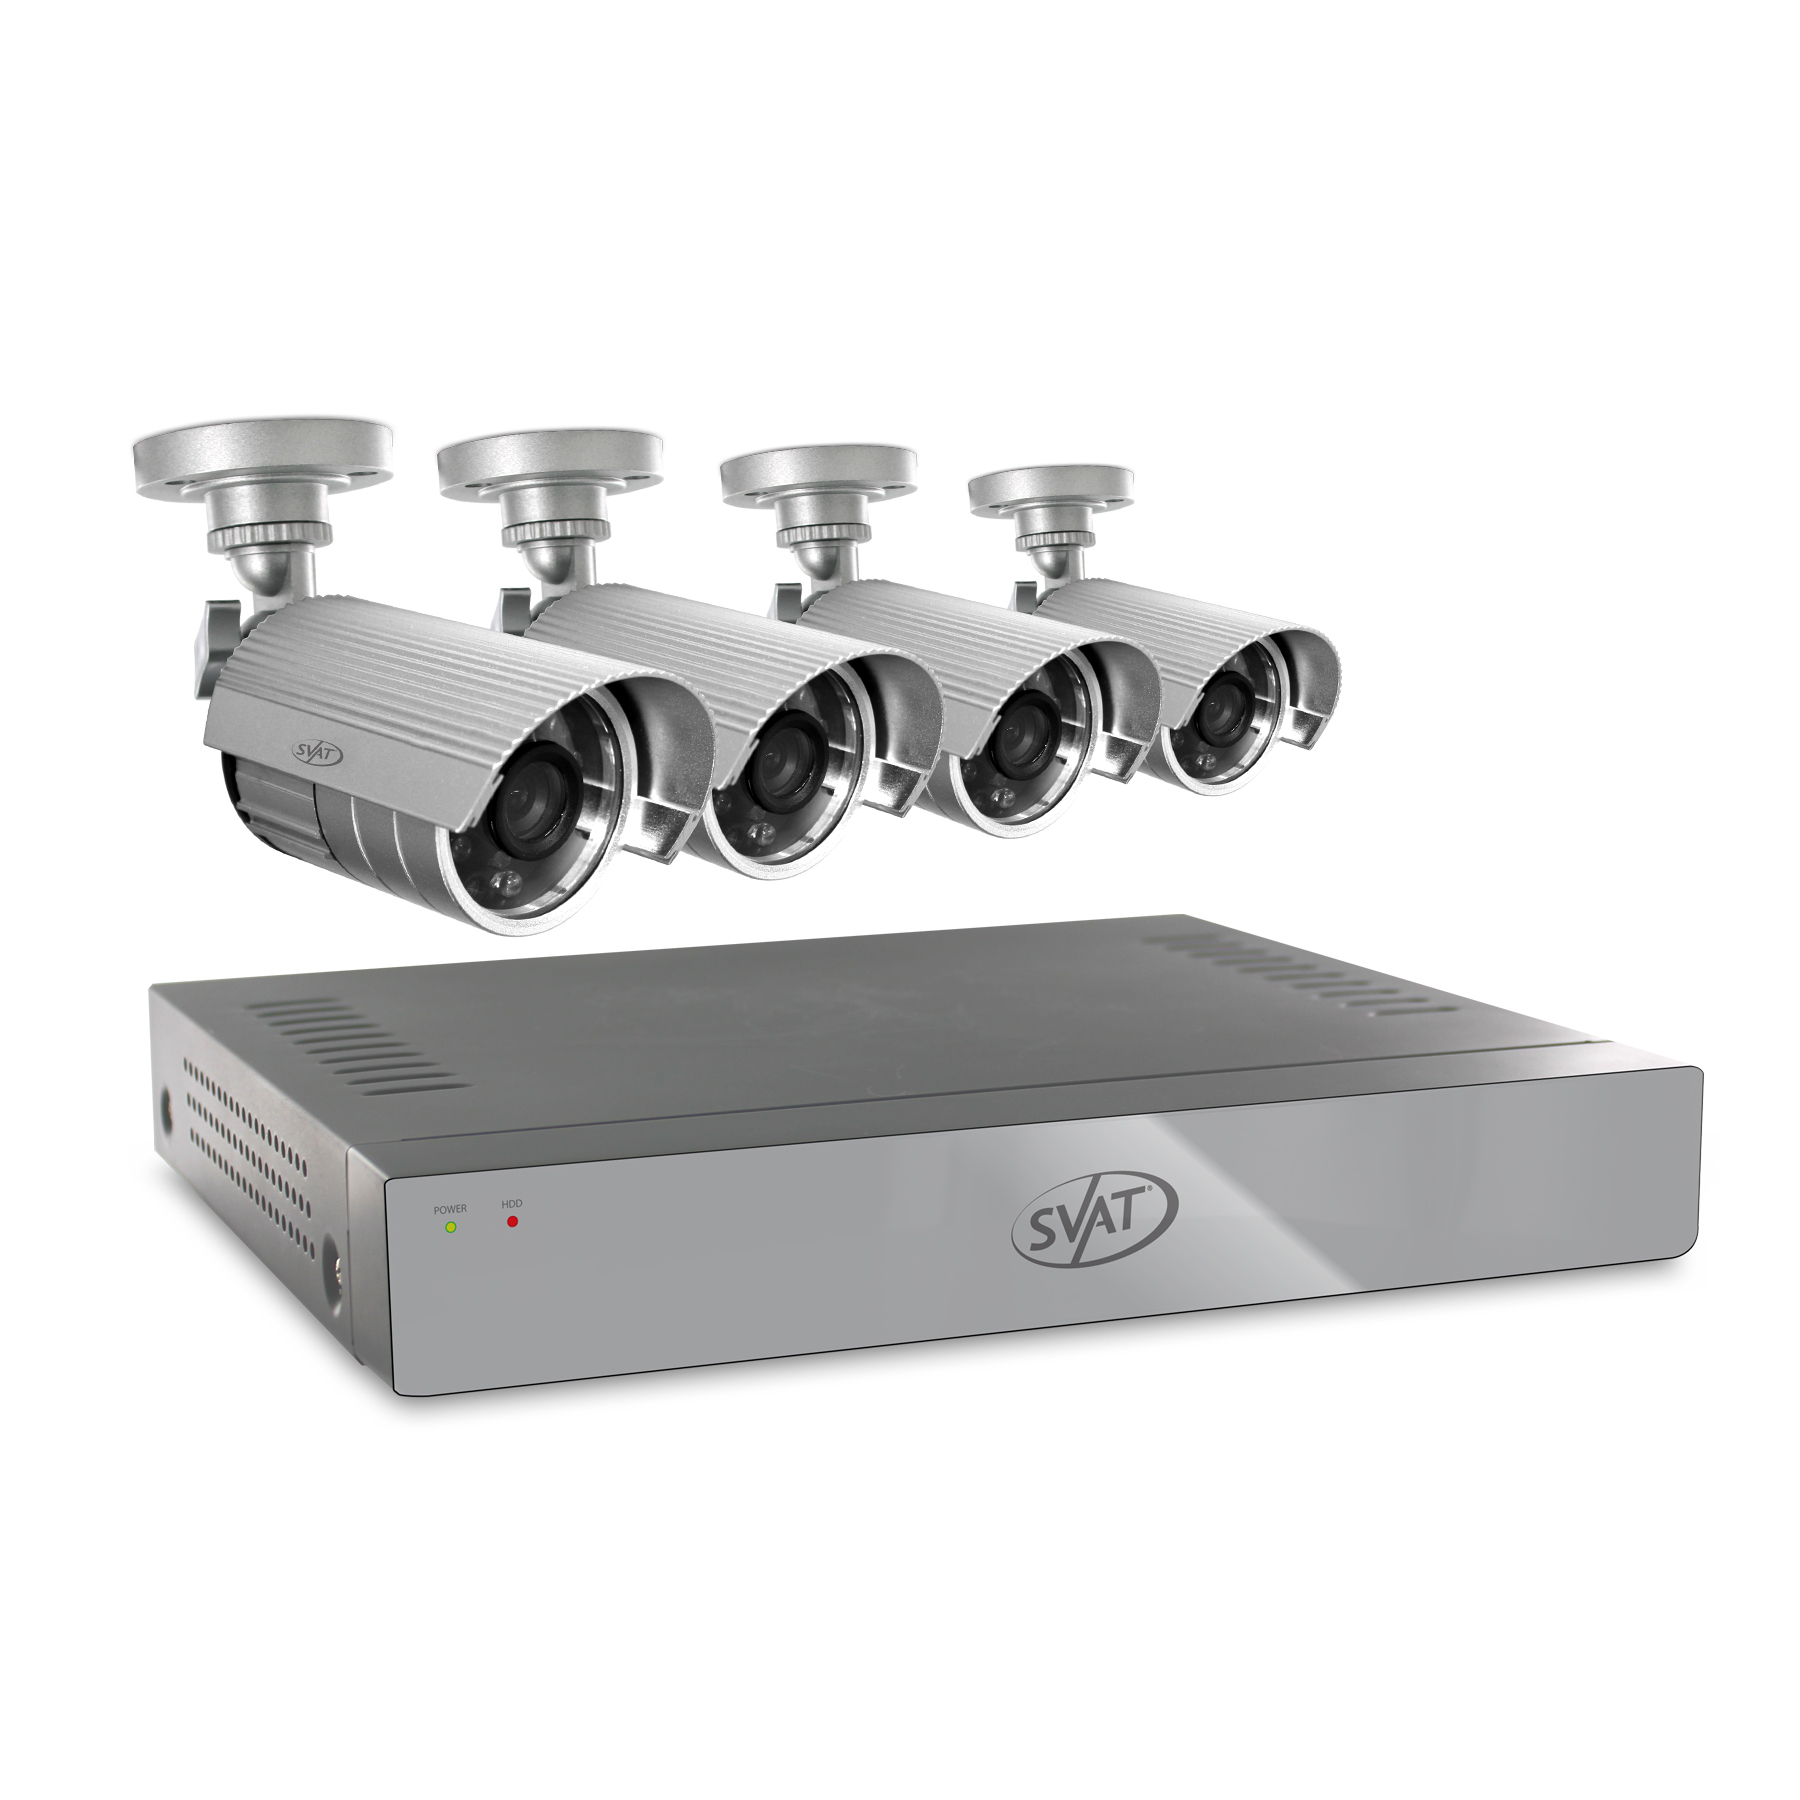 11020 - SVAT 4CH Smart Security DVR w/ 4 Outdoor 75ft Night Vision Cameras 500GB HDD